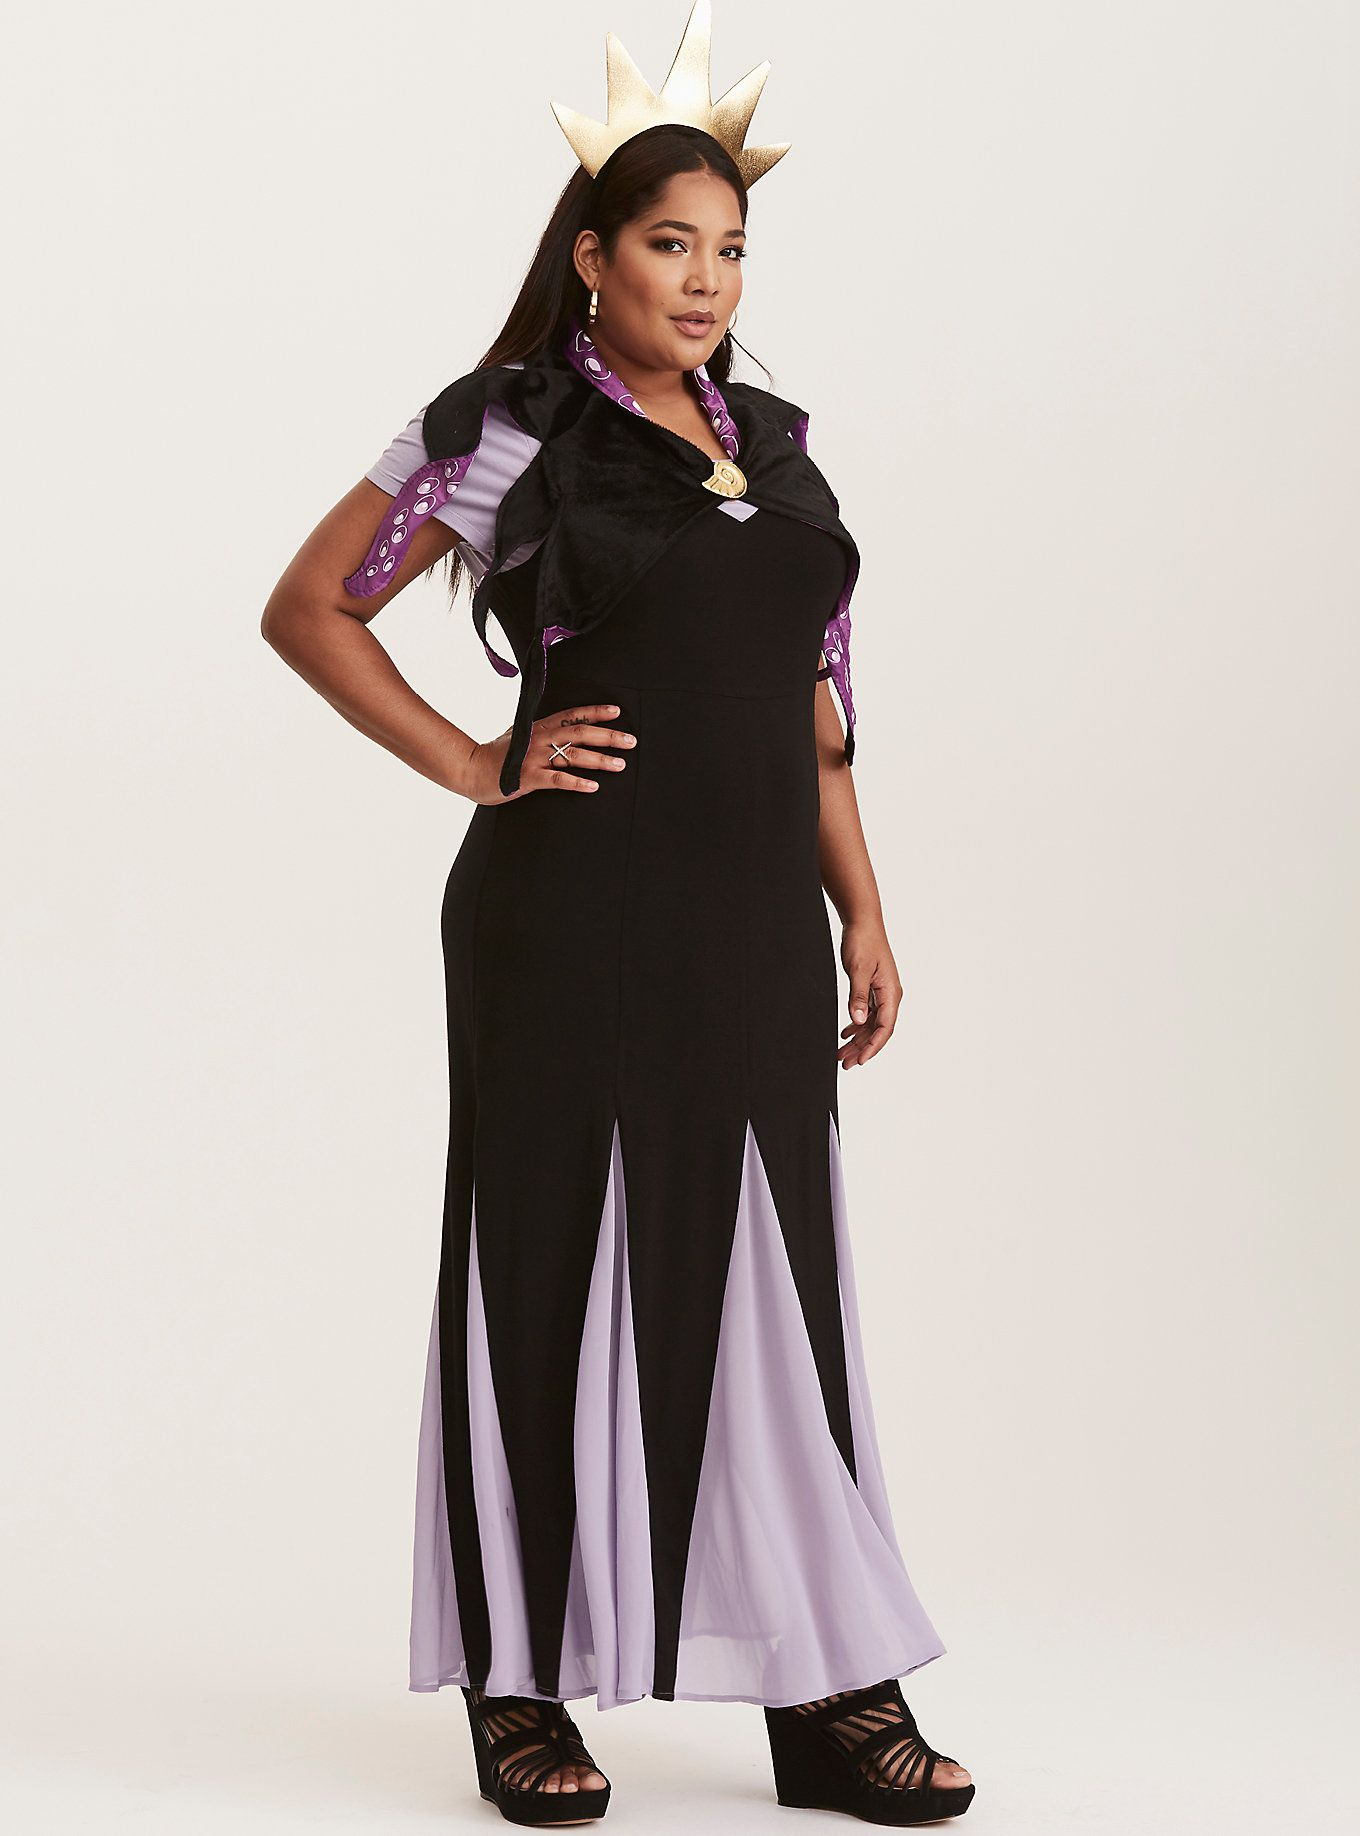 disney ursula outfit torrid plus size halloween costume